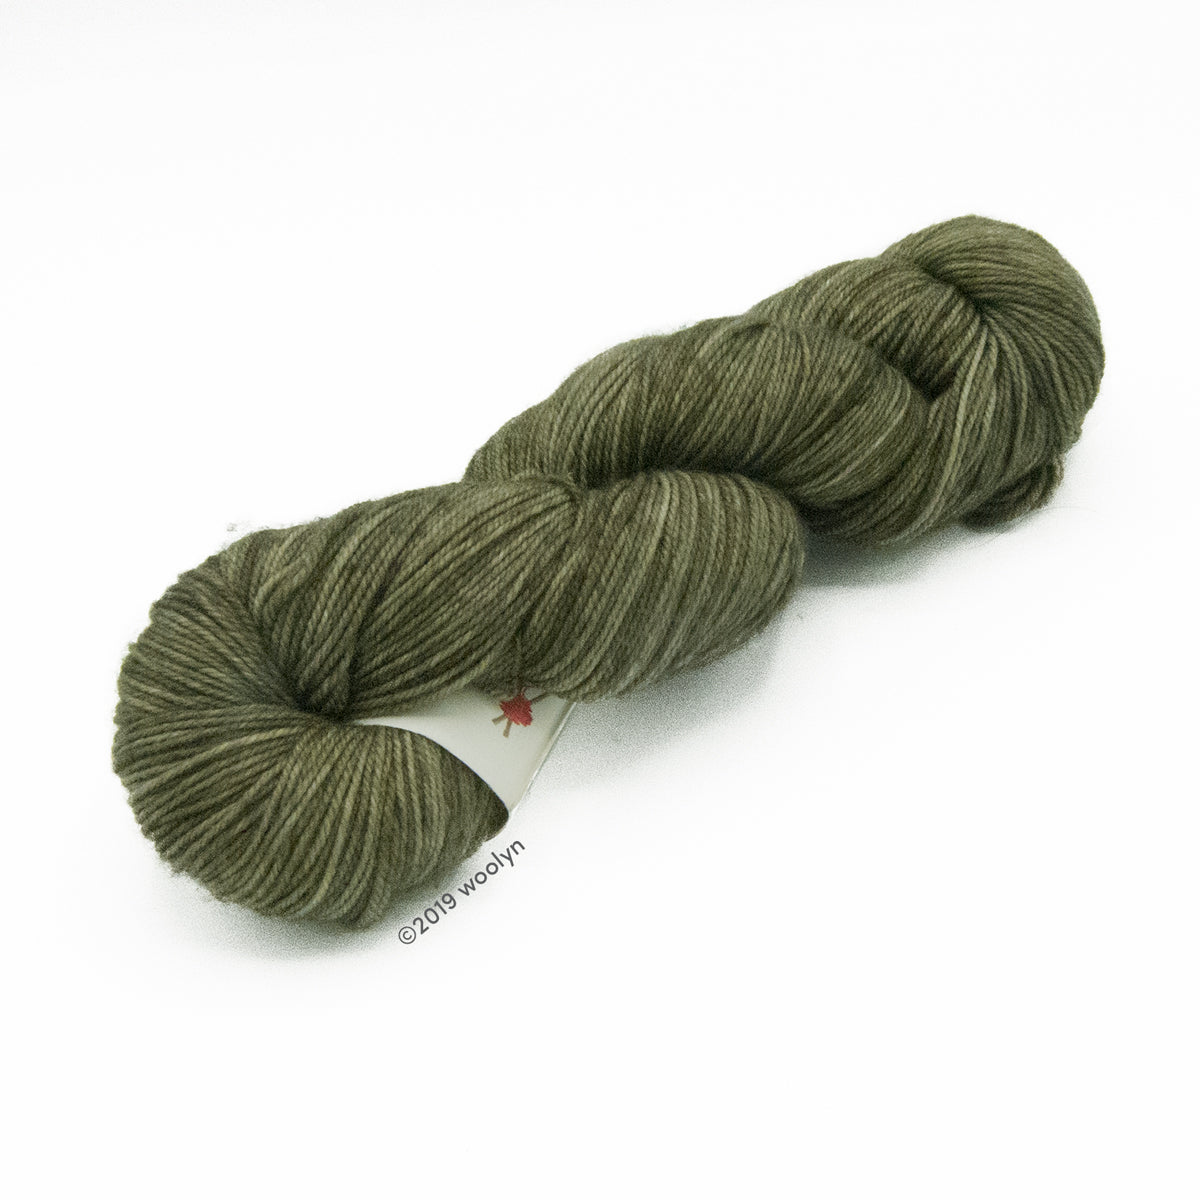 Hand dyed  fingering weight yarn in dark olive with hints of black tonal shades twisted into a skein.